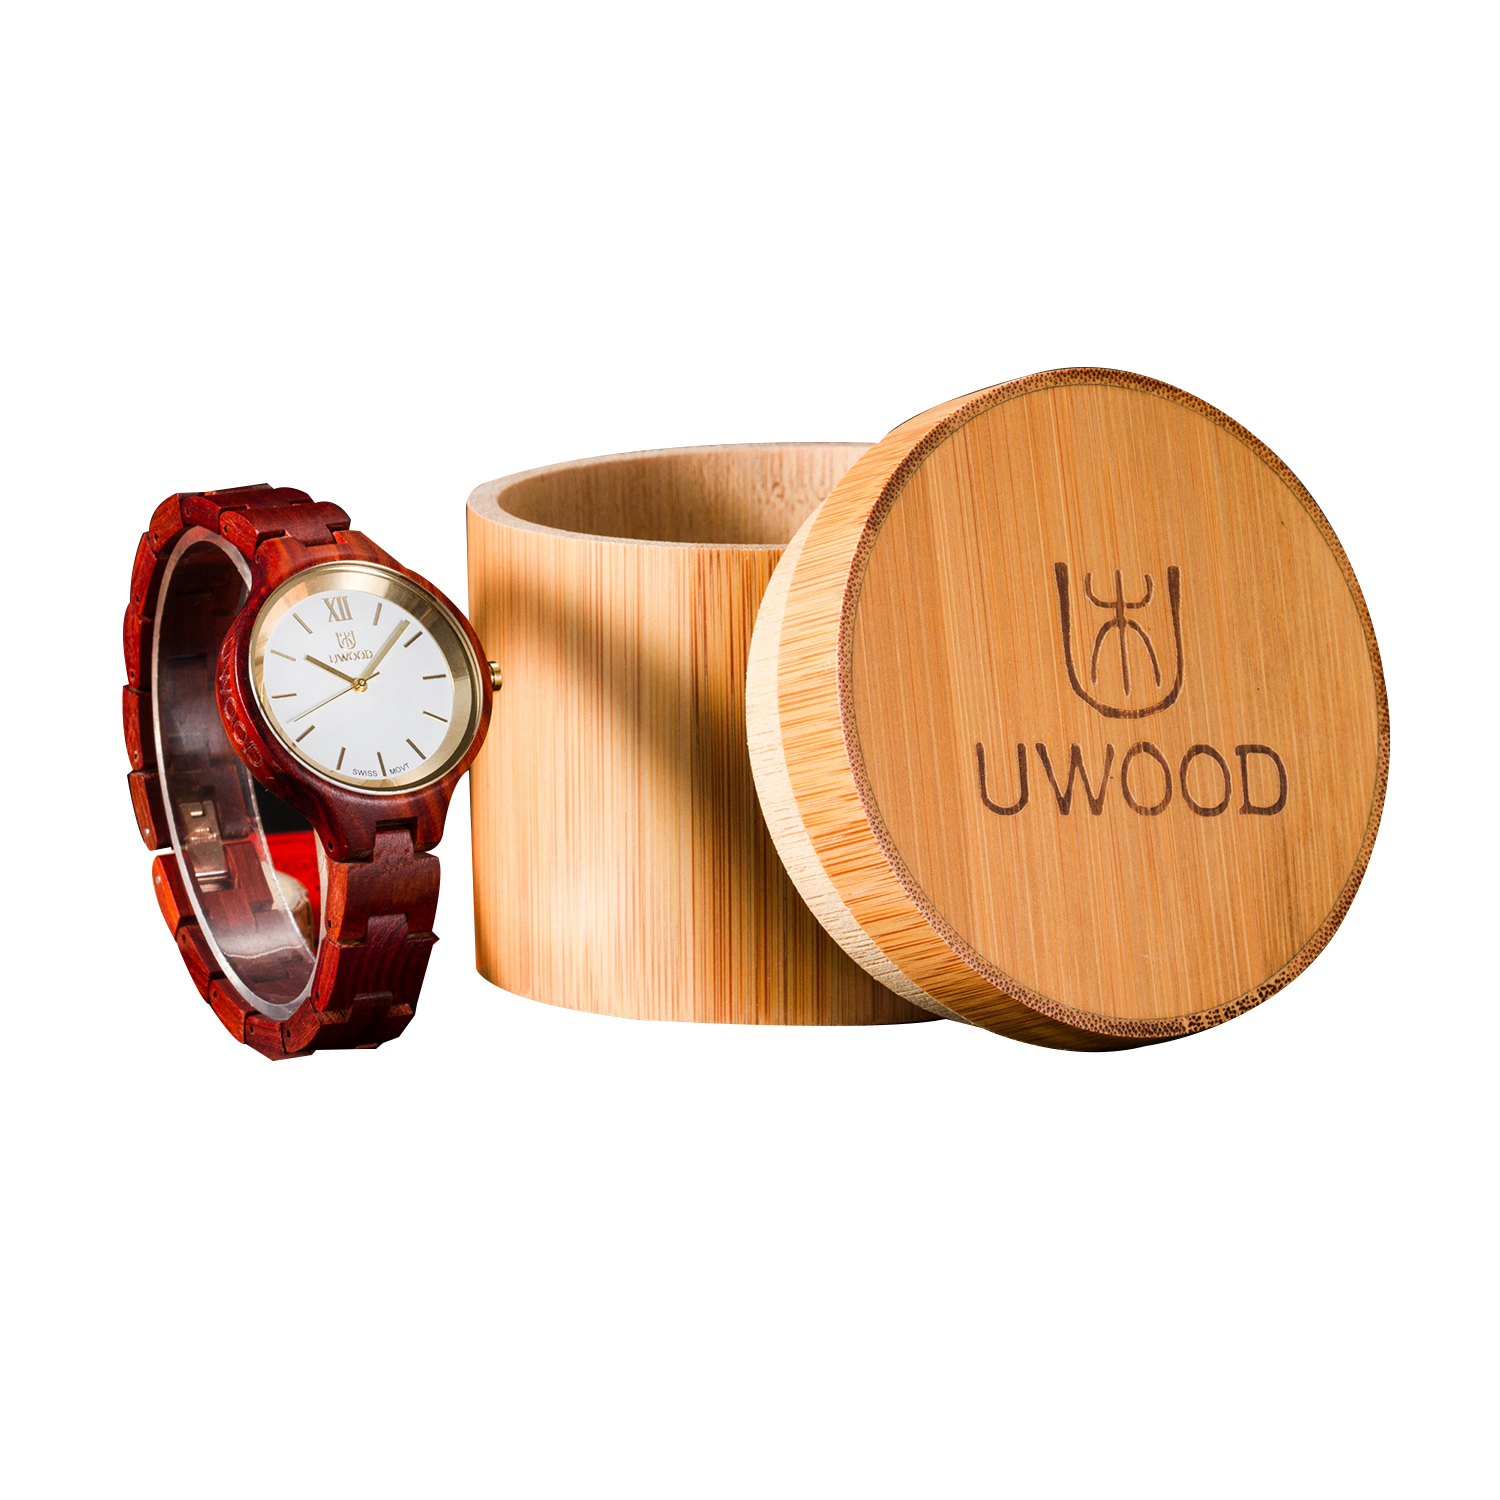 Classic Wooden Round Single Watch Holder Case Storage Box for Watch (Watch Not Included)